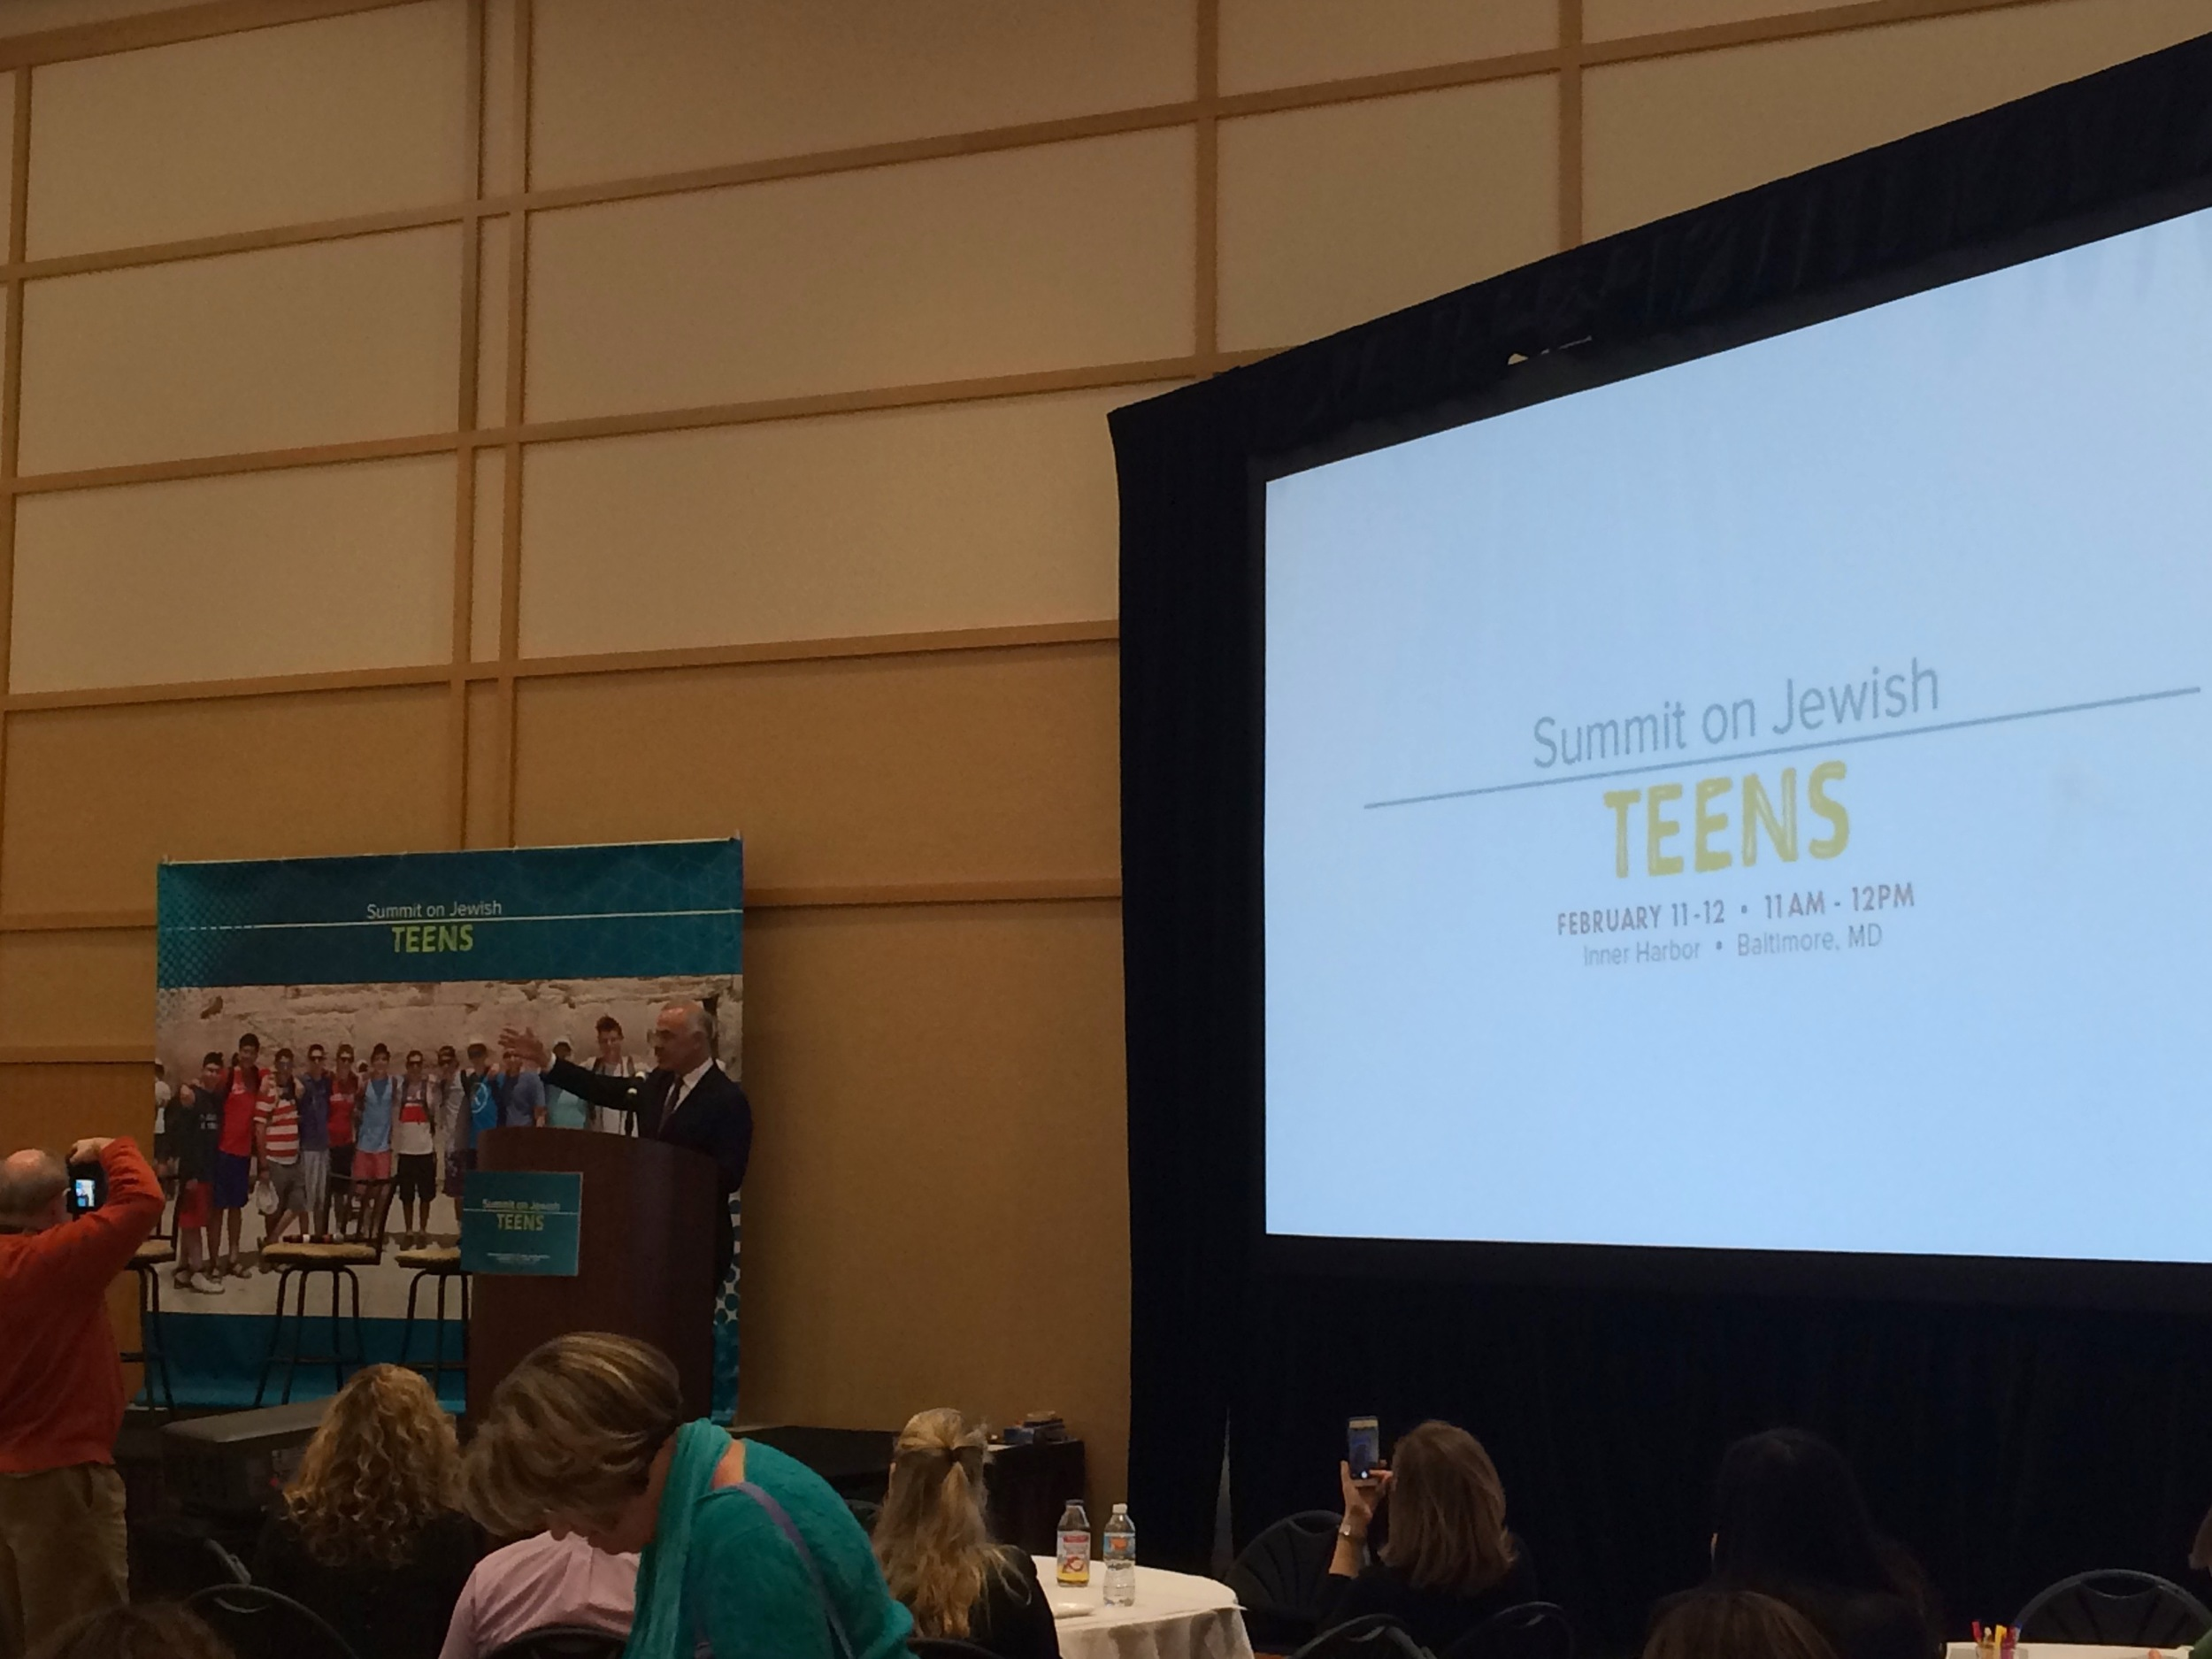 David Brooks, New York Times columnist and author of  The Road to Character , addresses the Summit on Jewish Teens about building a Jewish future.